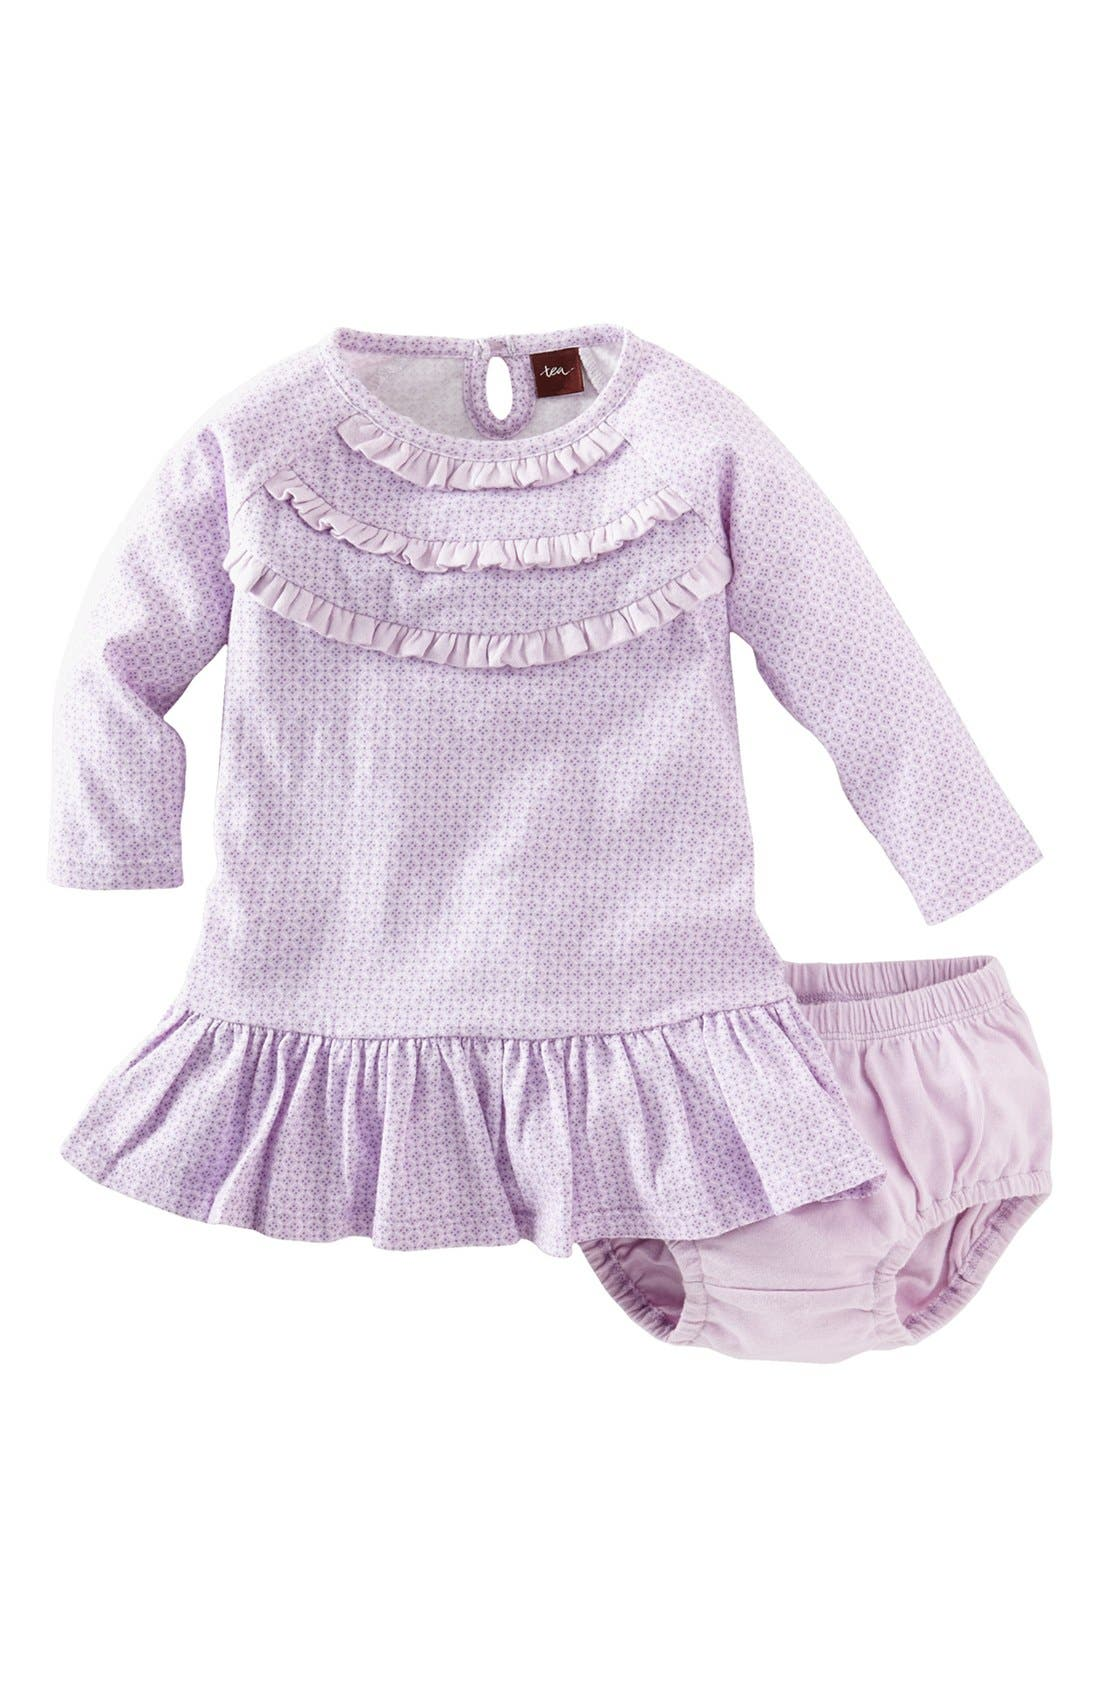 Alternate Image 1 Selected - Tea Collection 'Diamond' Dress & Bloomers (Baby Girls)